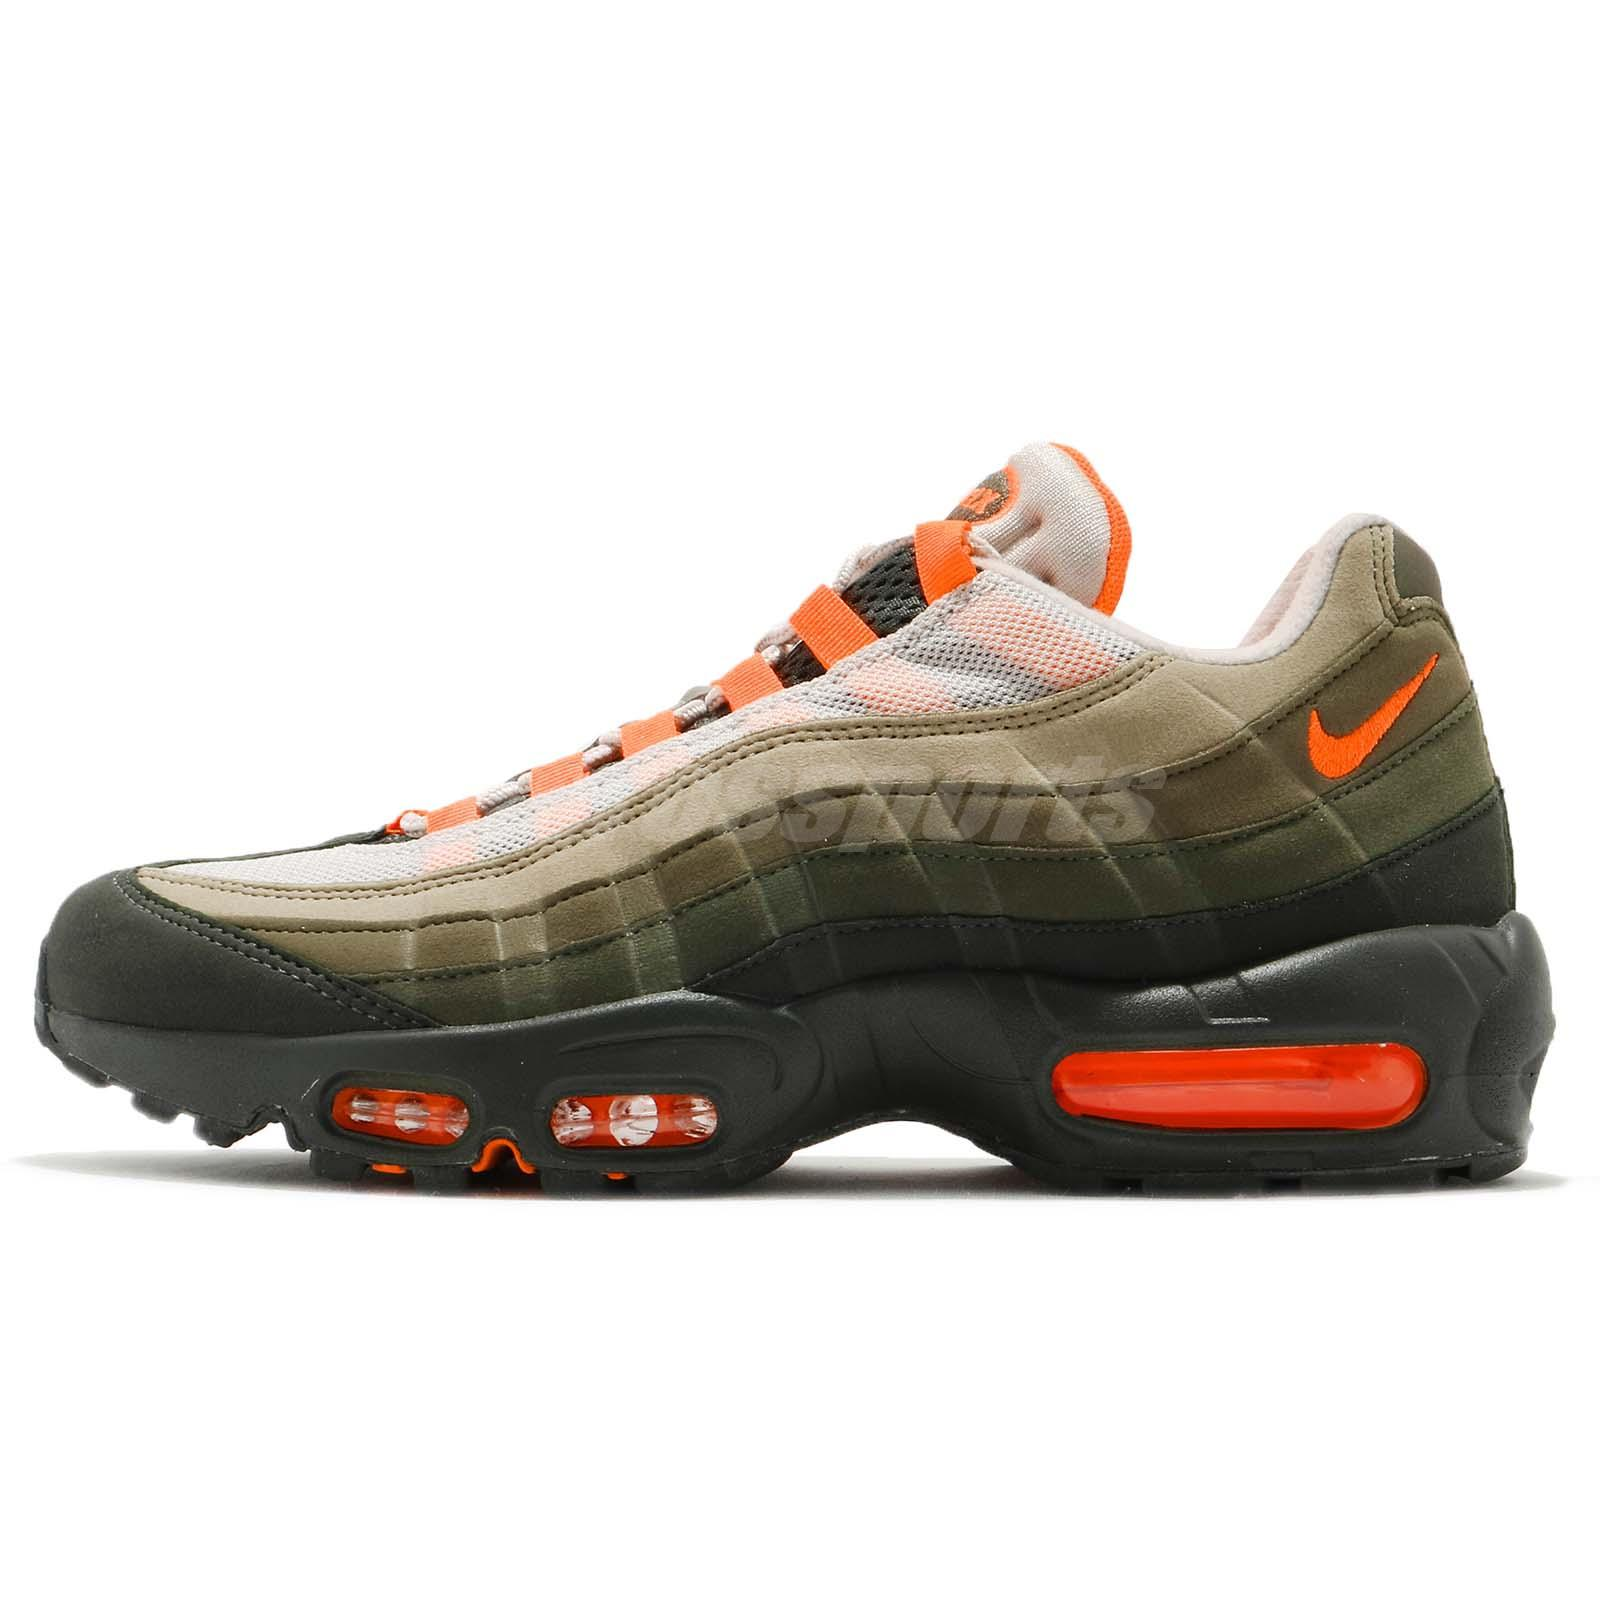 48f11471504 Nike Air Max 95 OG String Green Total Orange Neutral Olive NSW Shoes AT2865- 200